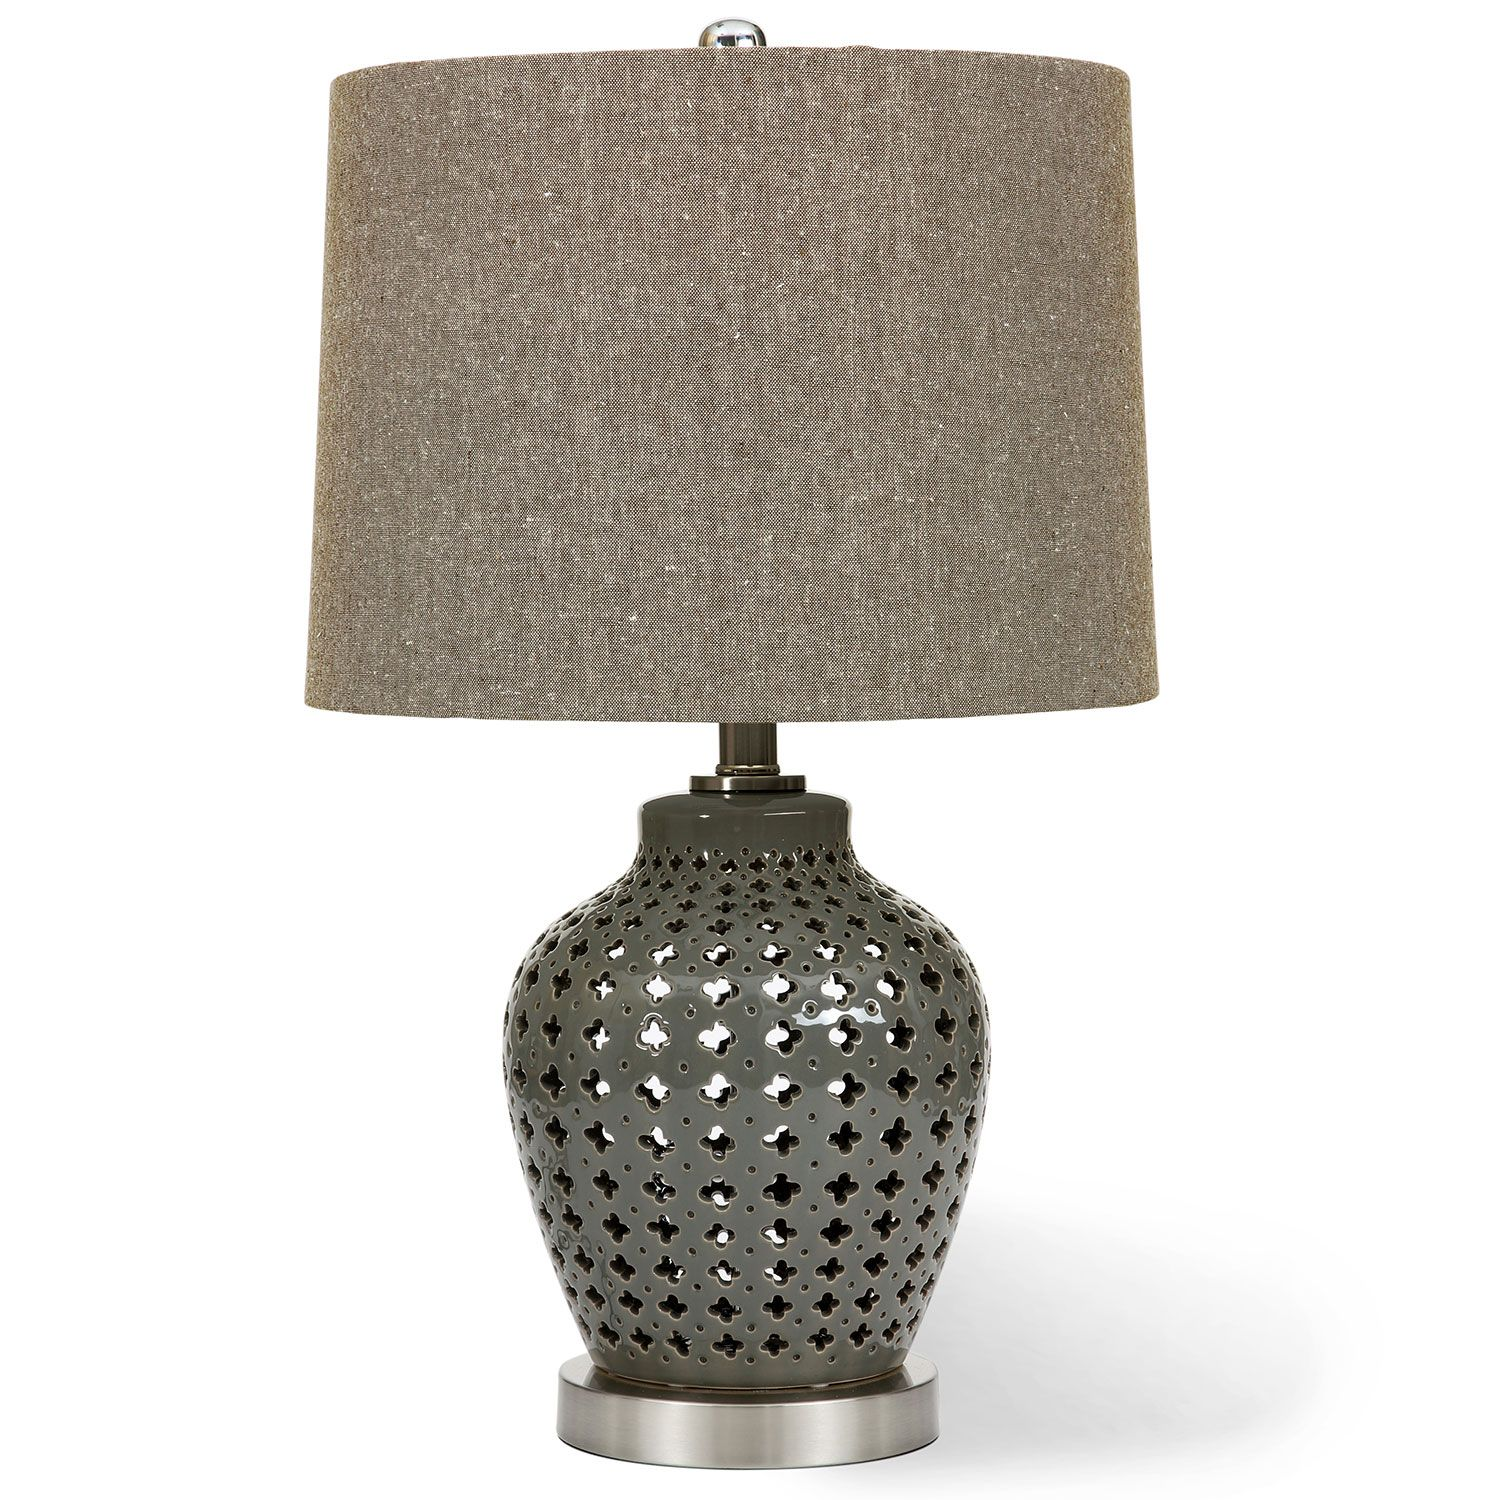 Open lattice ceramic table lamp 36x58cm by decorator clearance on thehome com au